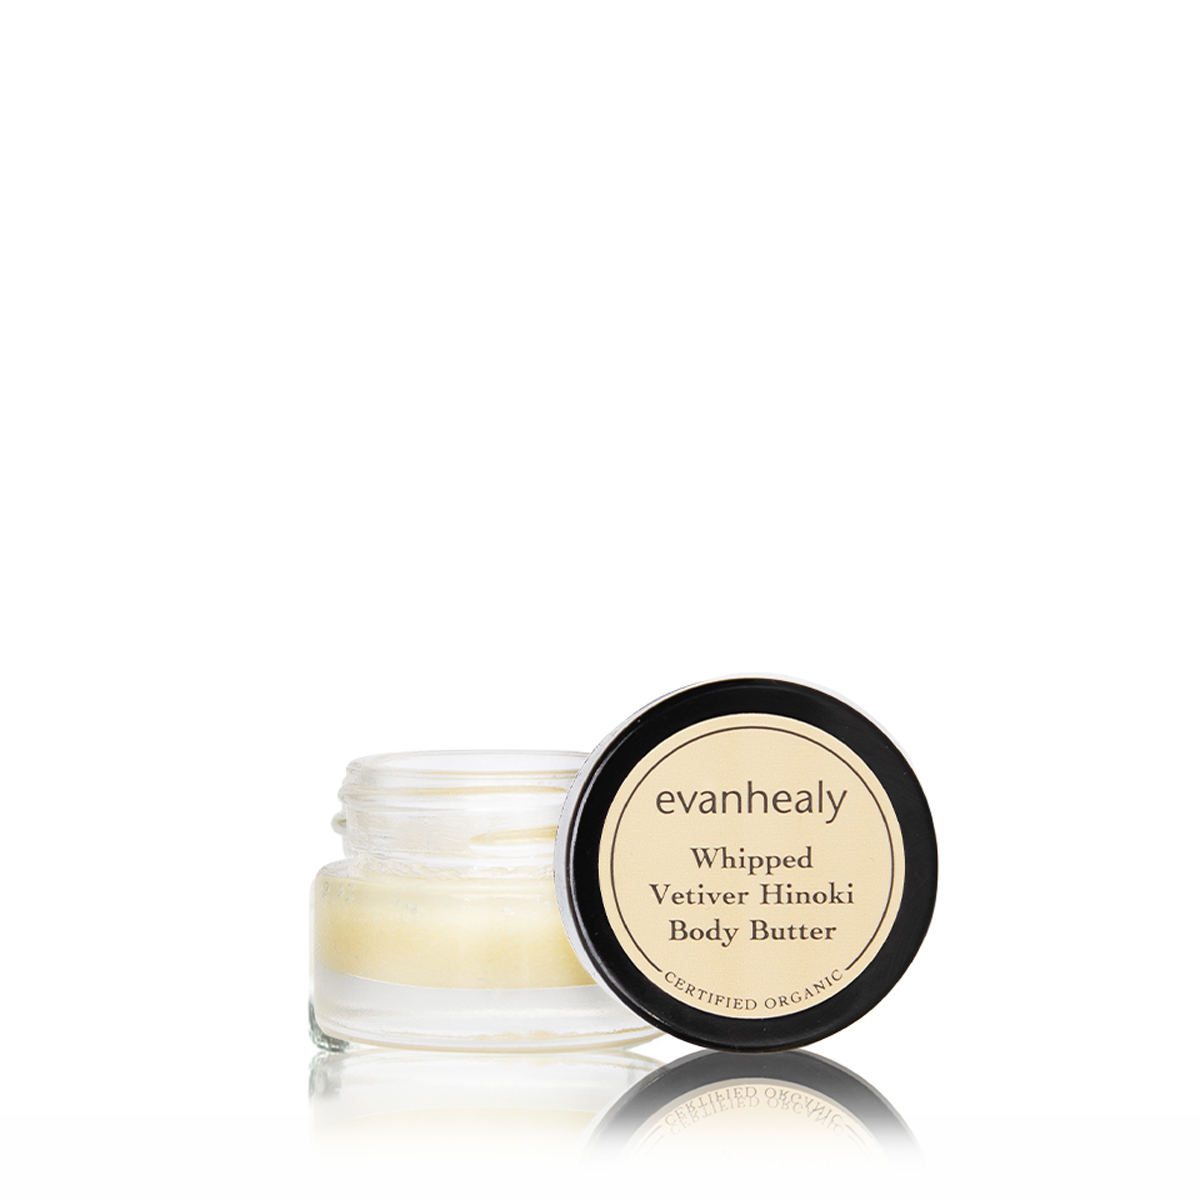 Whipped Vetiver Hinoki Body Butter